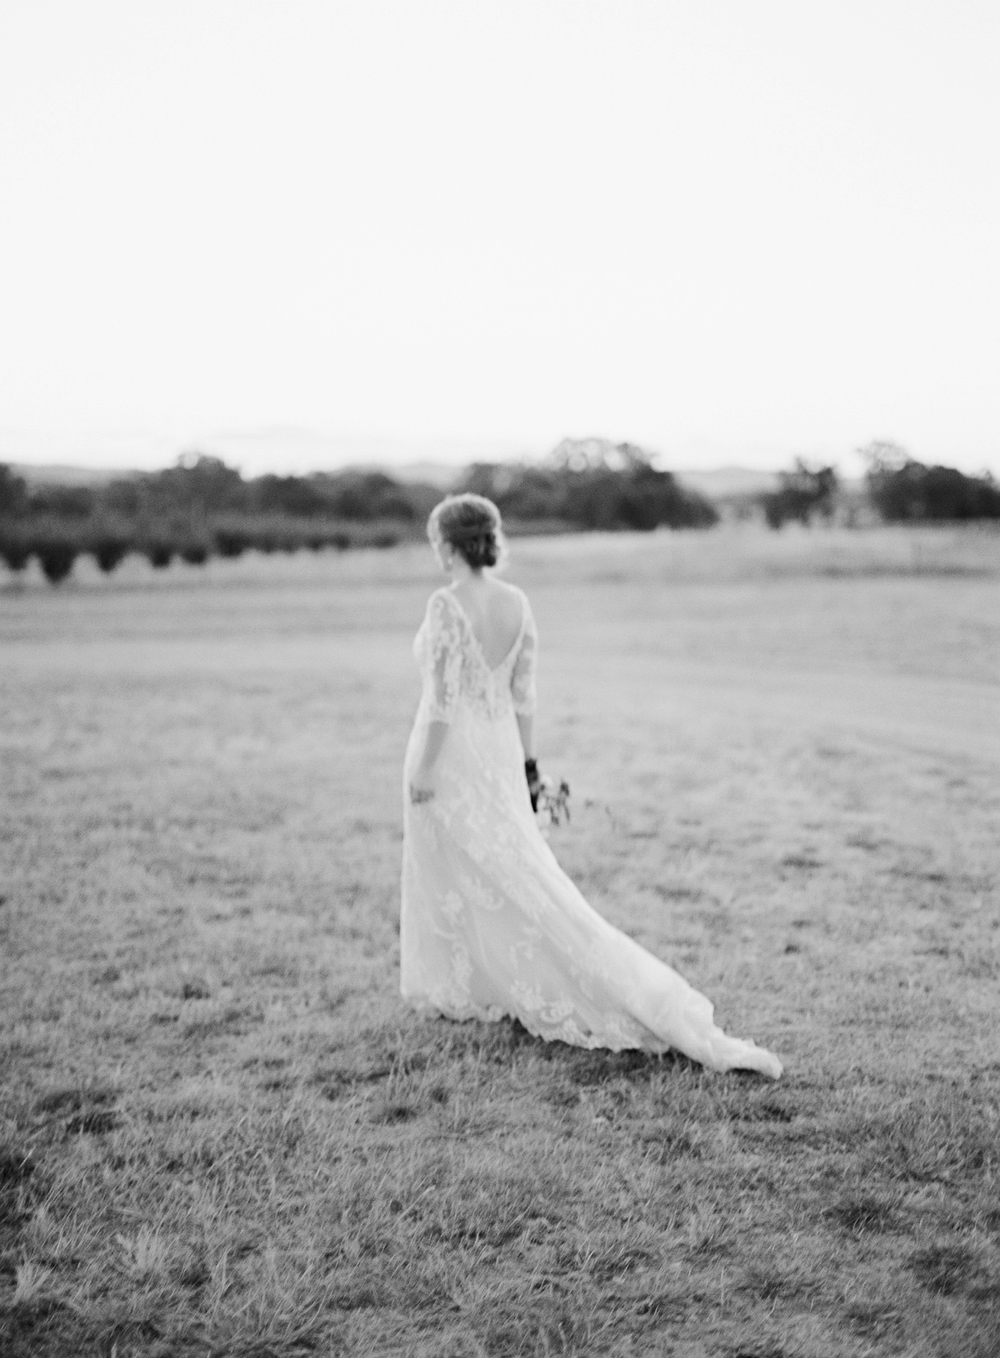 The Vine Grove Mudgee Wedding, Photography by Mr Edwards_1830.jpg